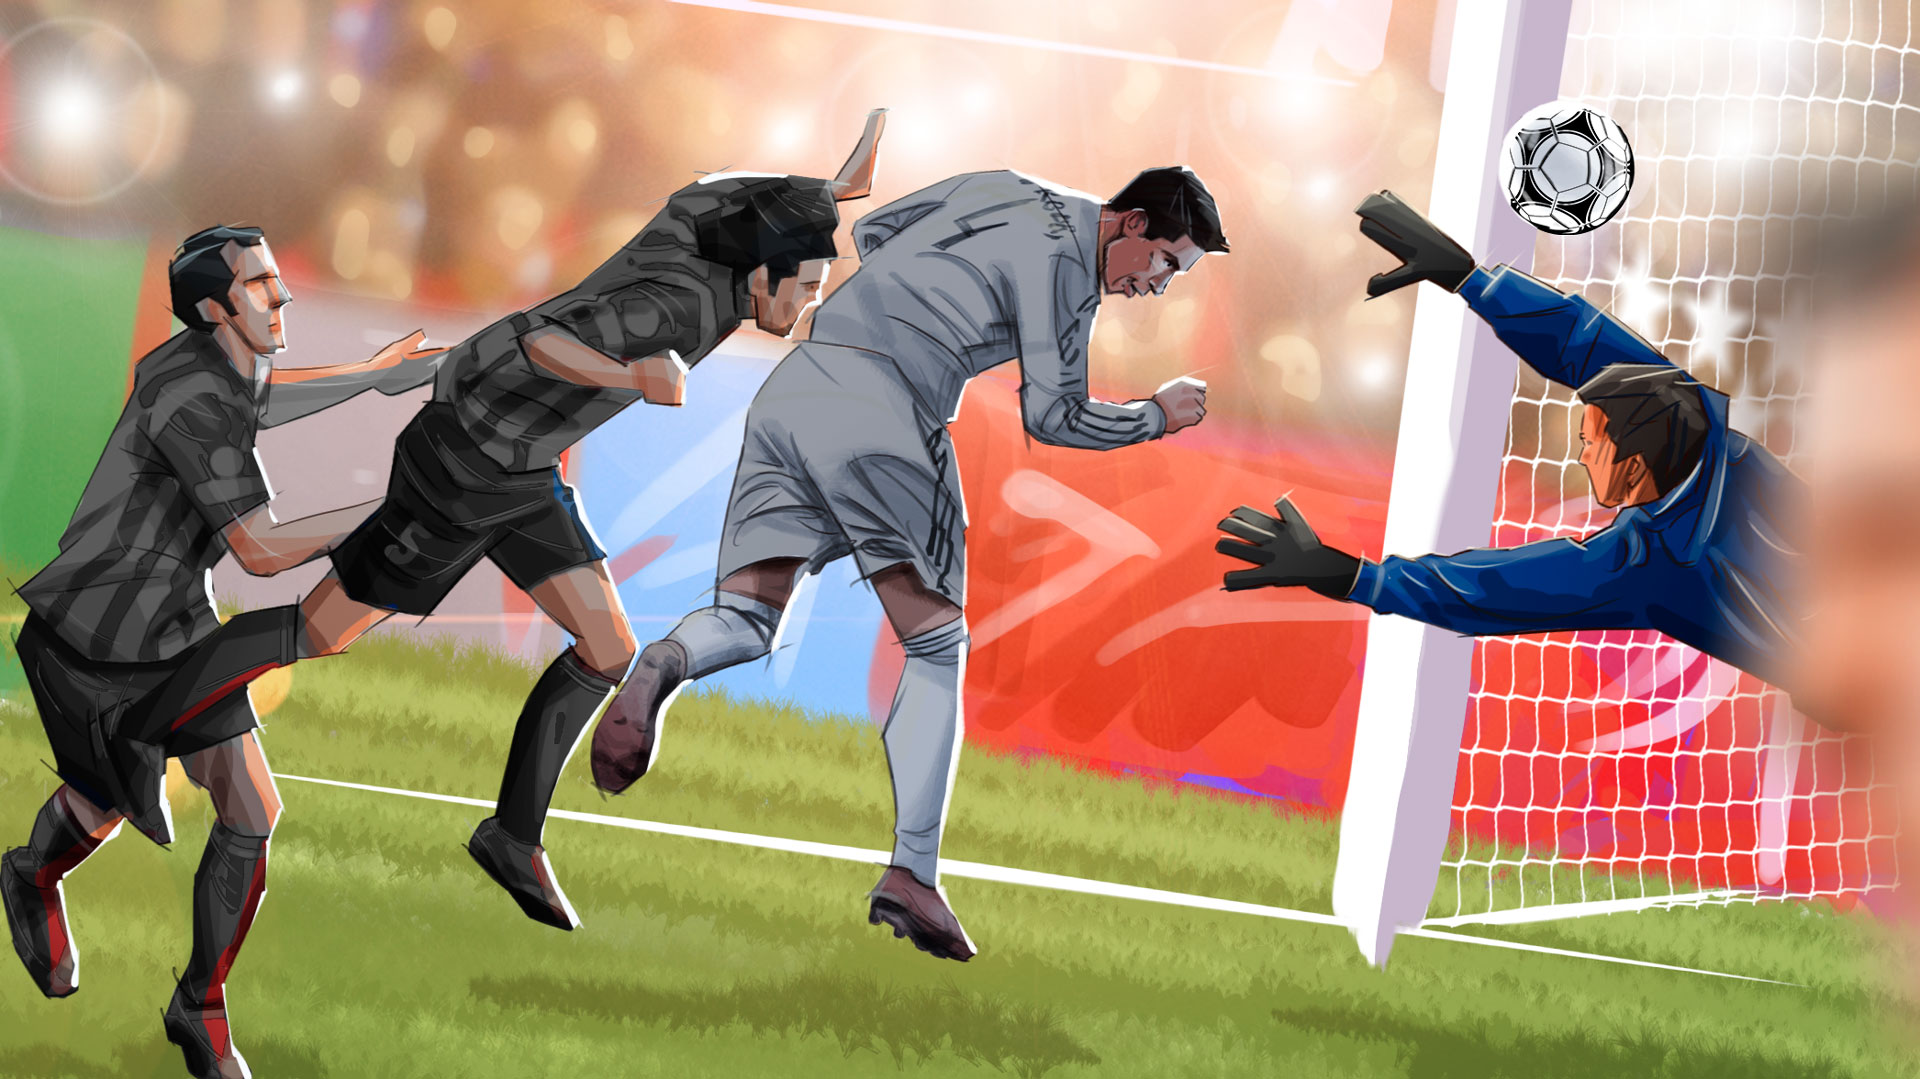 player fifa soccer illustration game advertising